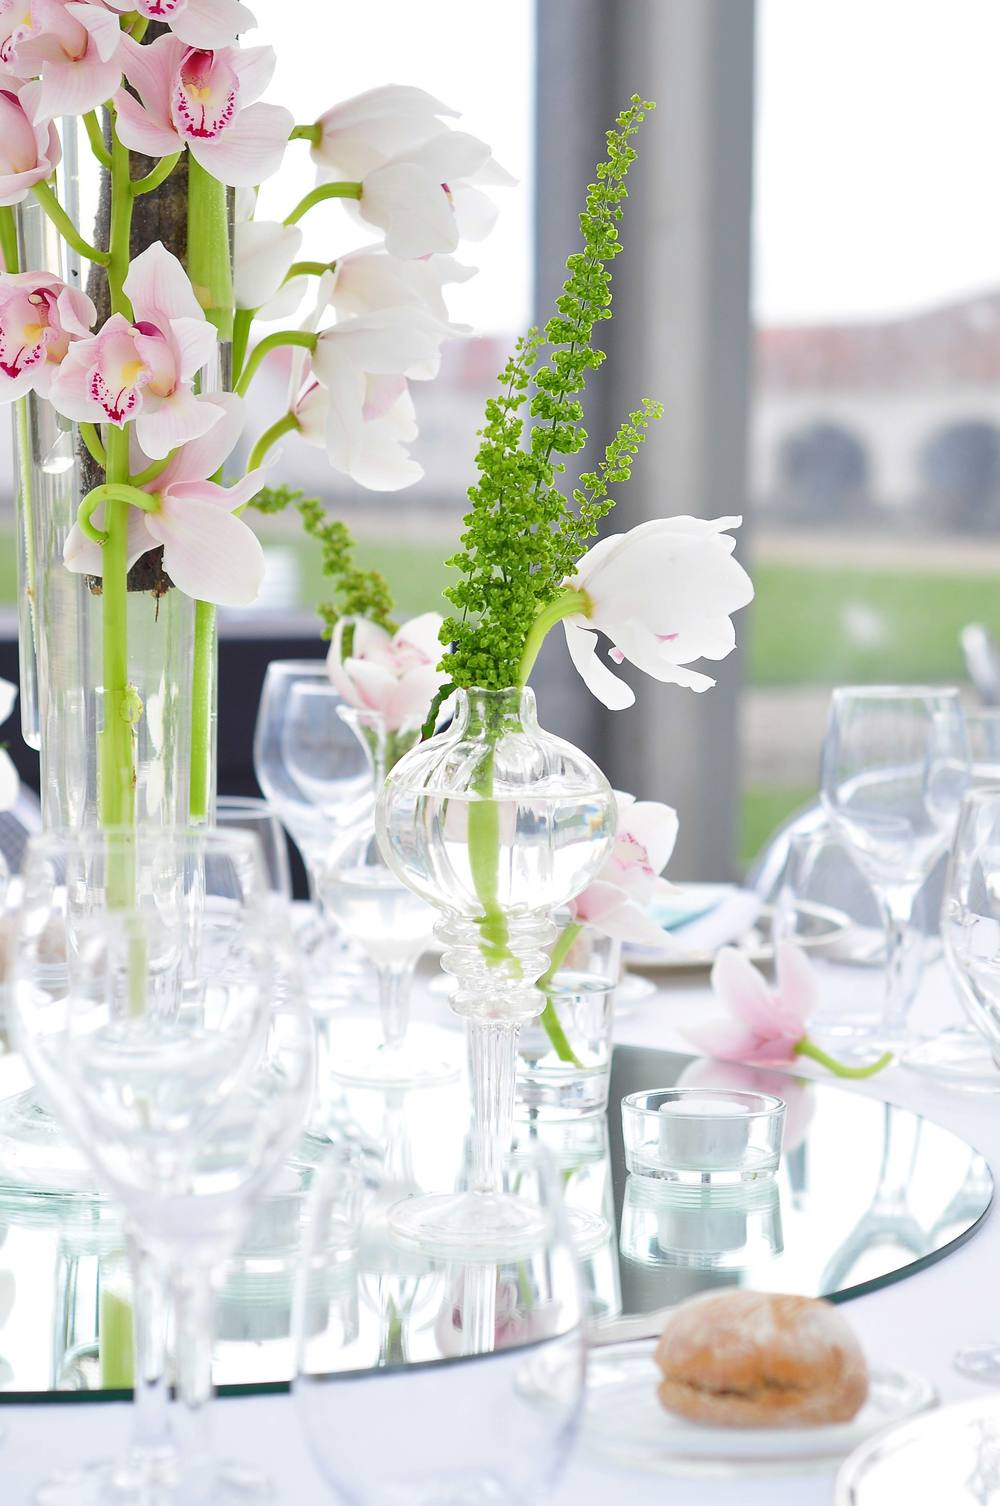 Orchids as table flowers for wedding.jpg